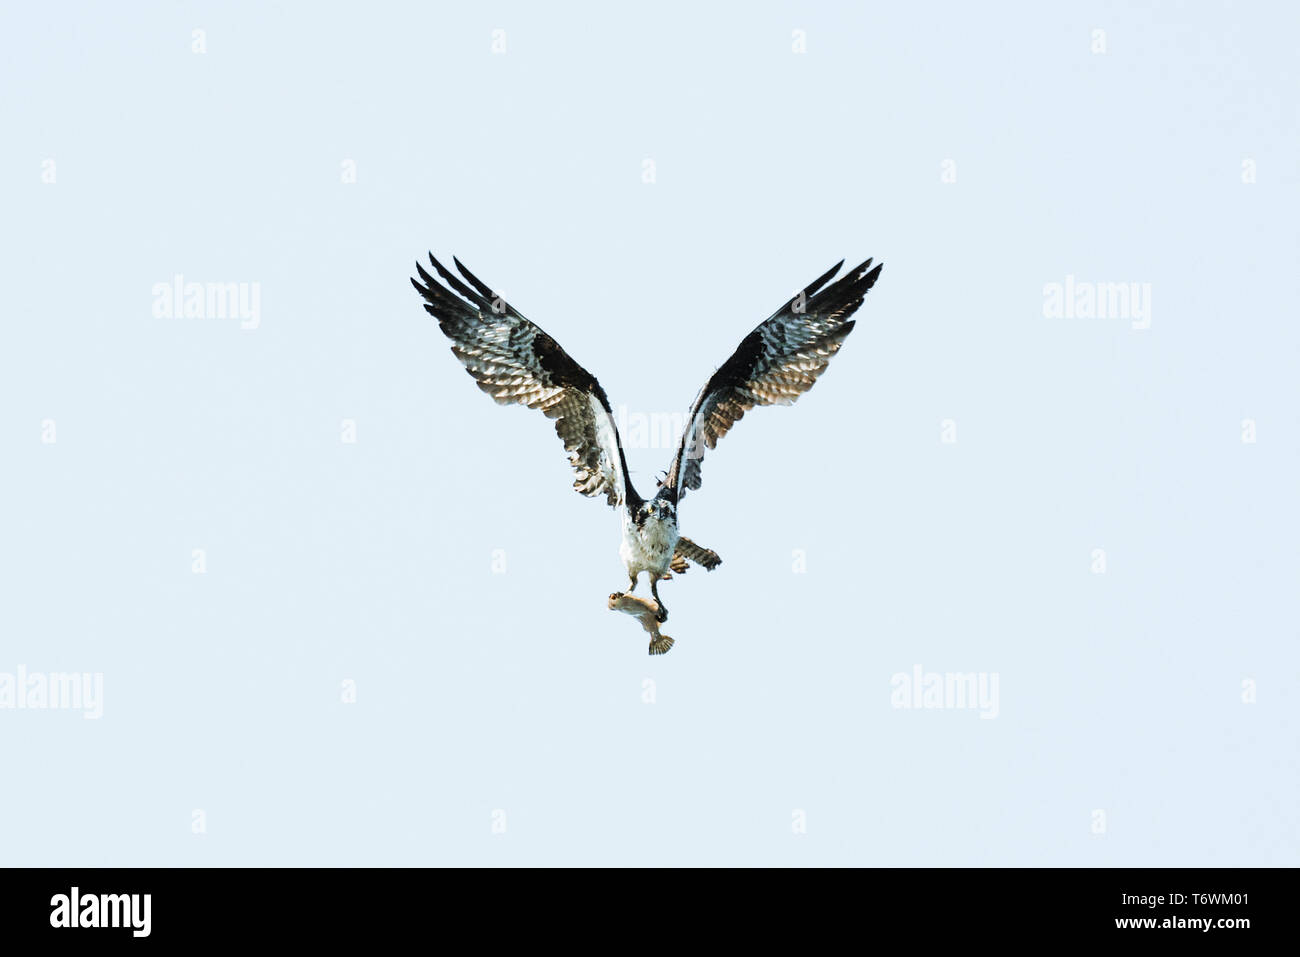 An osprey flying while carrying a flatfish - Stock Image